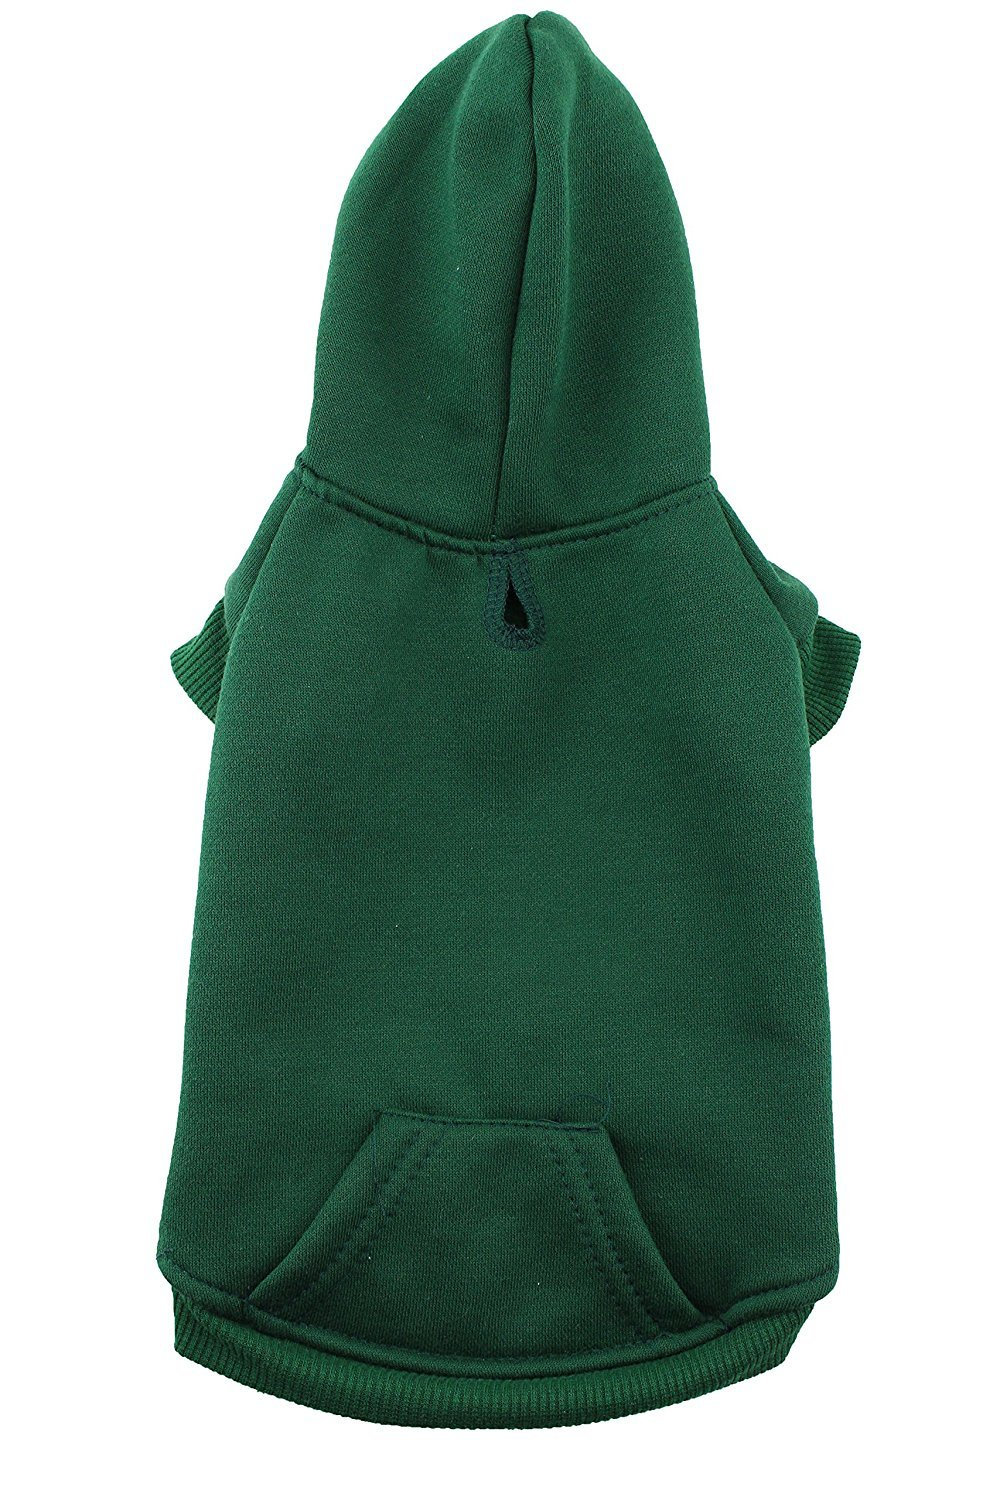 Hoodie Dog Sweatshirt by Midlee (X-Large, Green)